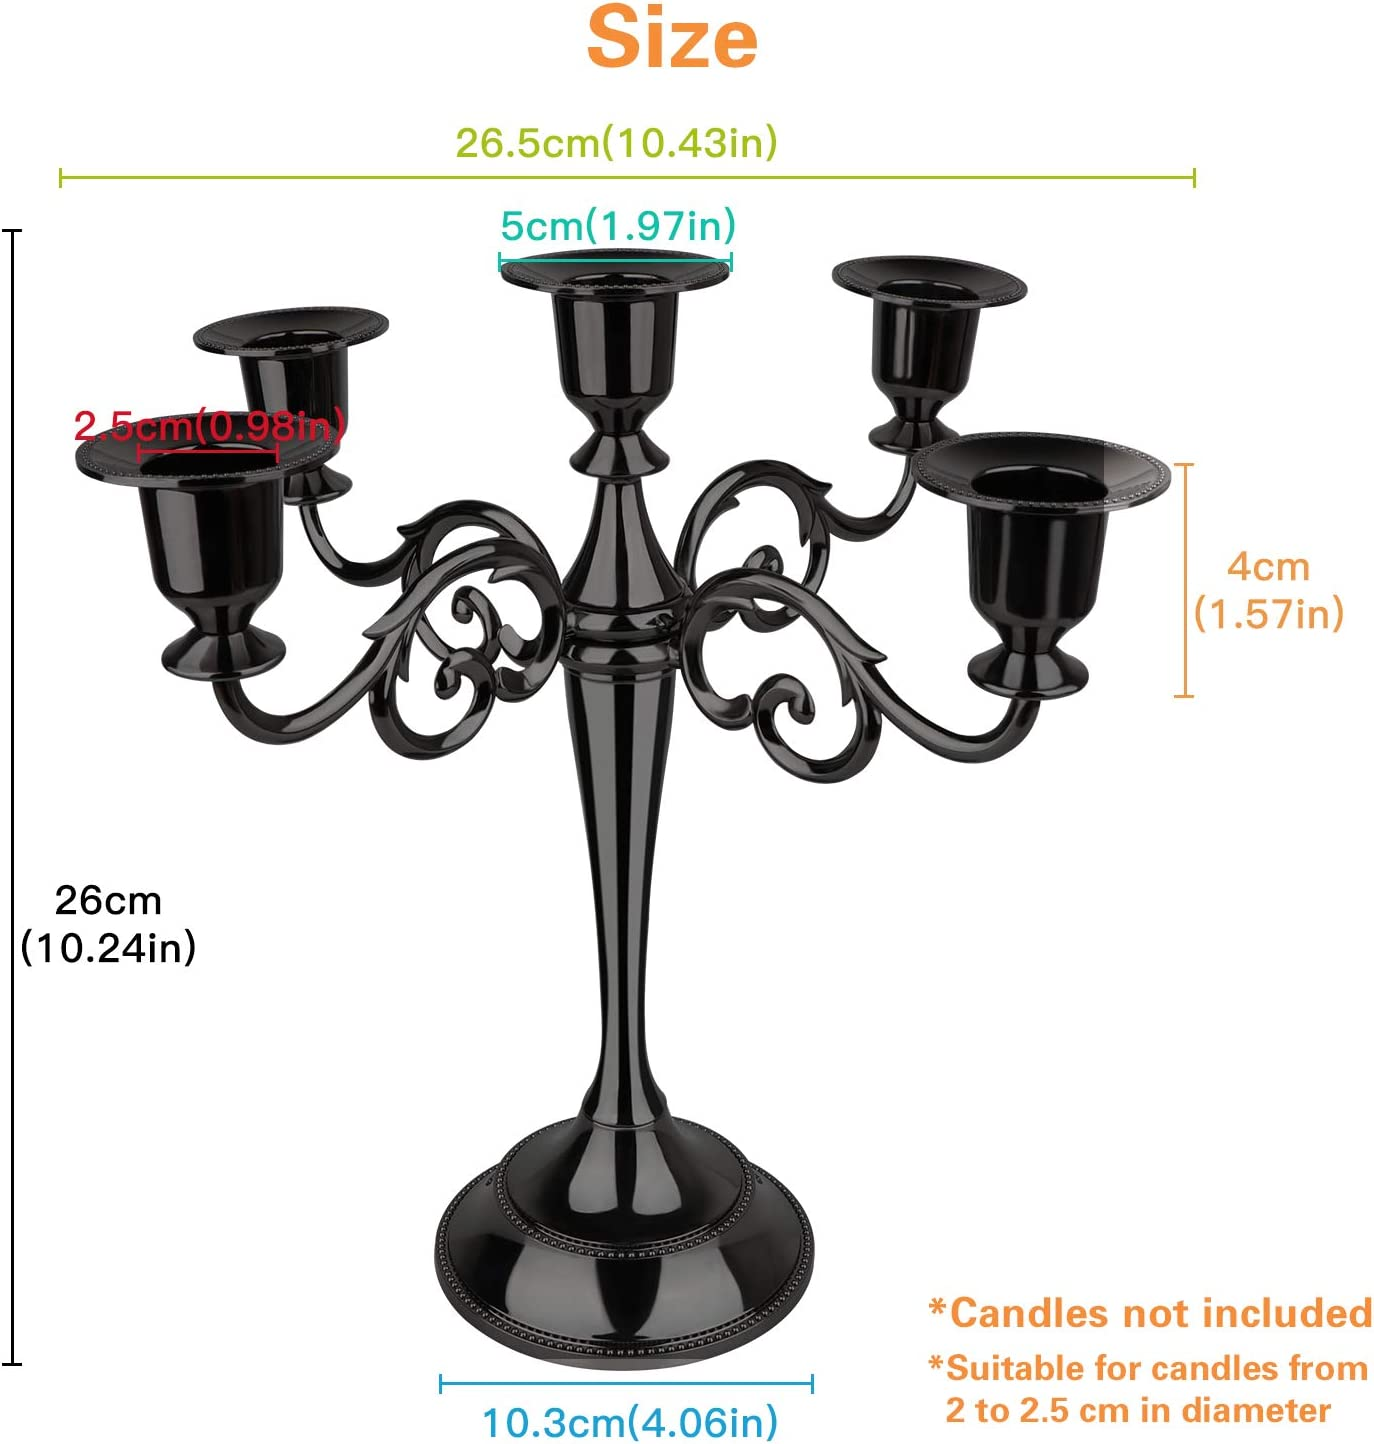 Classic Elegant Black Mirrored Finish Design Candlestick Stand AOSTON 5-Candle Metal Candelabra,10.24 Inch Tall Candle Holder Black Wedding Event and Party Candle Stick